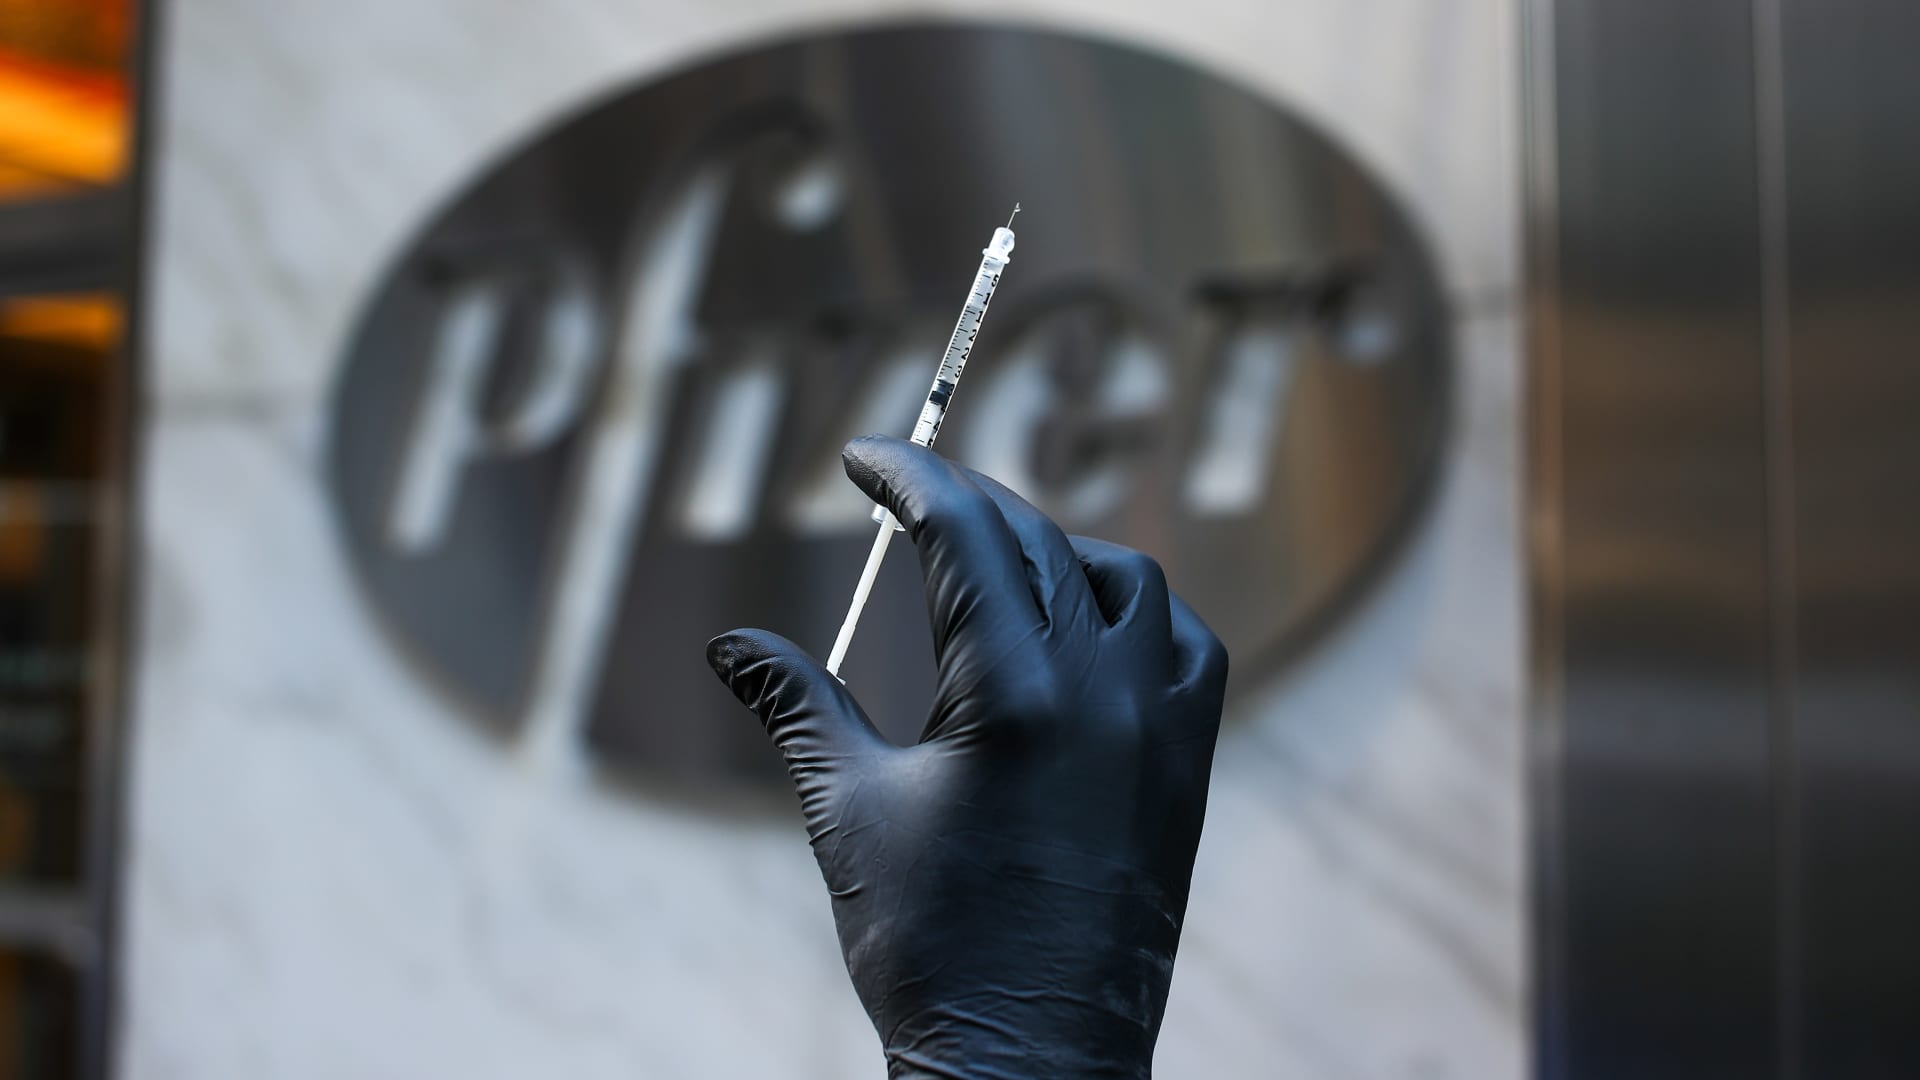 A syringe is seen by the logo of Pfizer's headquarter in Manhattan, New York City, United States on November 19, 2020.